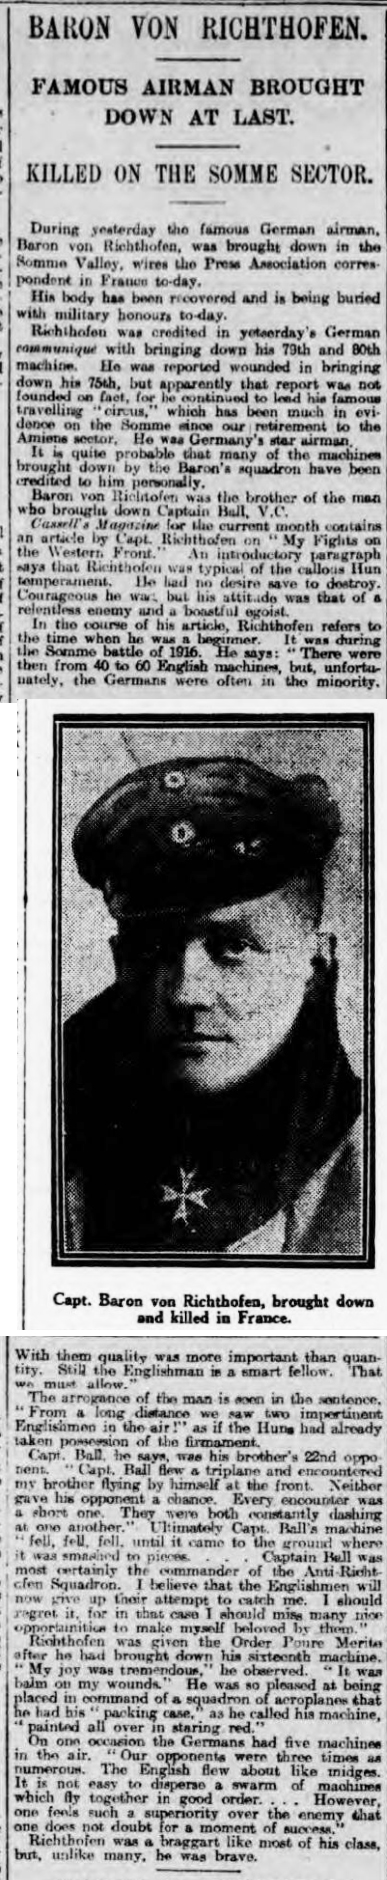 historical newspaper story about The Death of the red baron